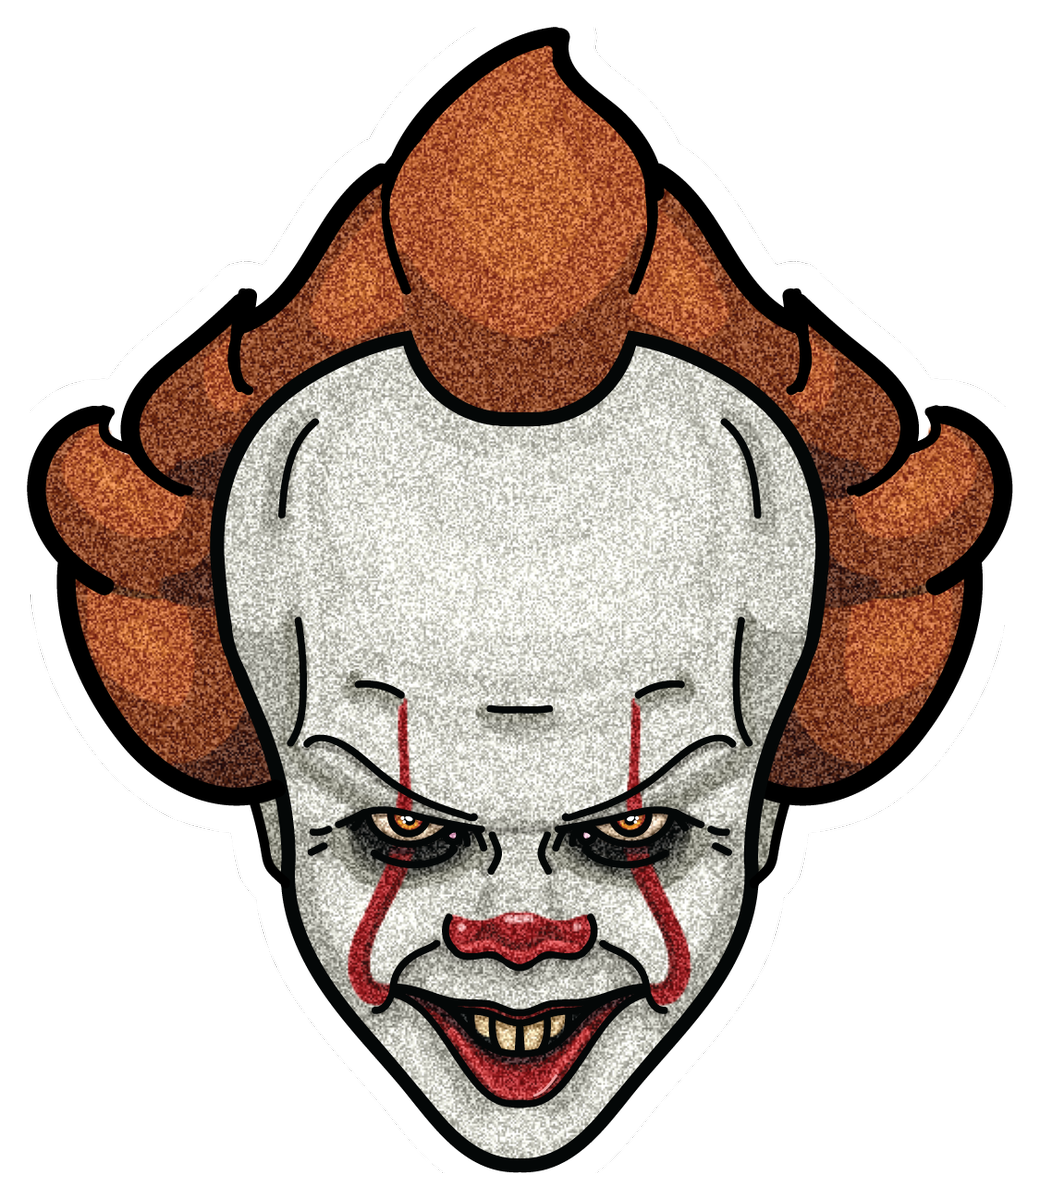 Pennywise face 2017 png. Wukong designs wukongdesigns twitter